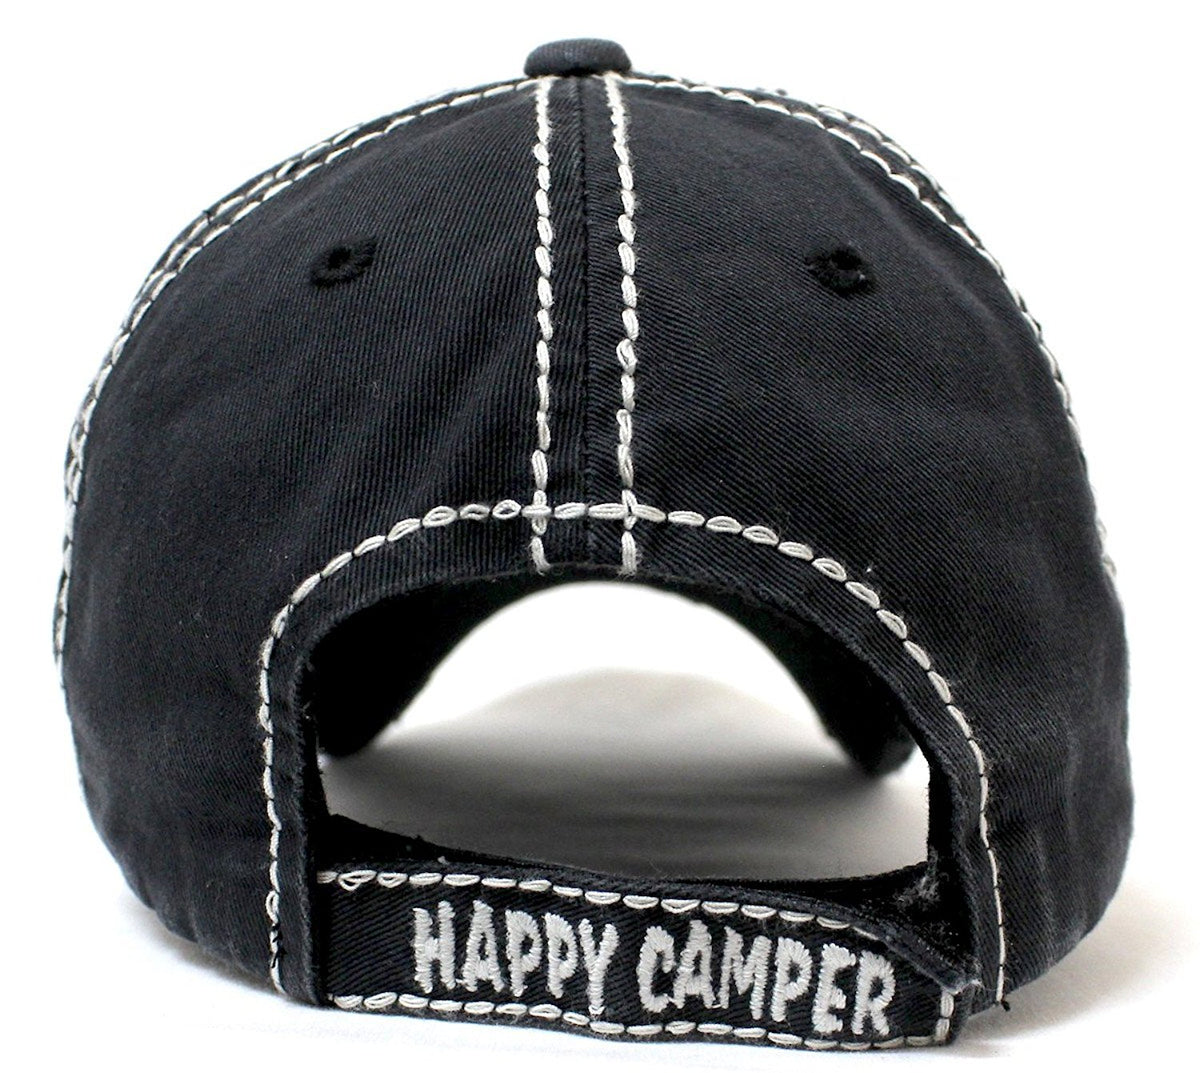 NEW!! Happy Camper Camp Fire Patch Embroidery Baseball Hat - Caps 'N Vintage